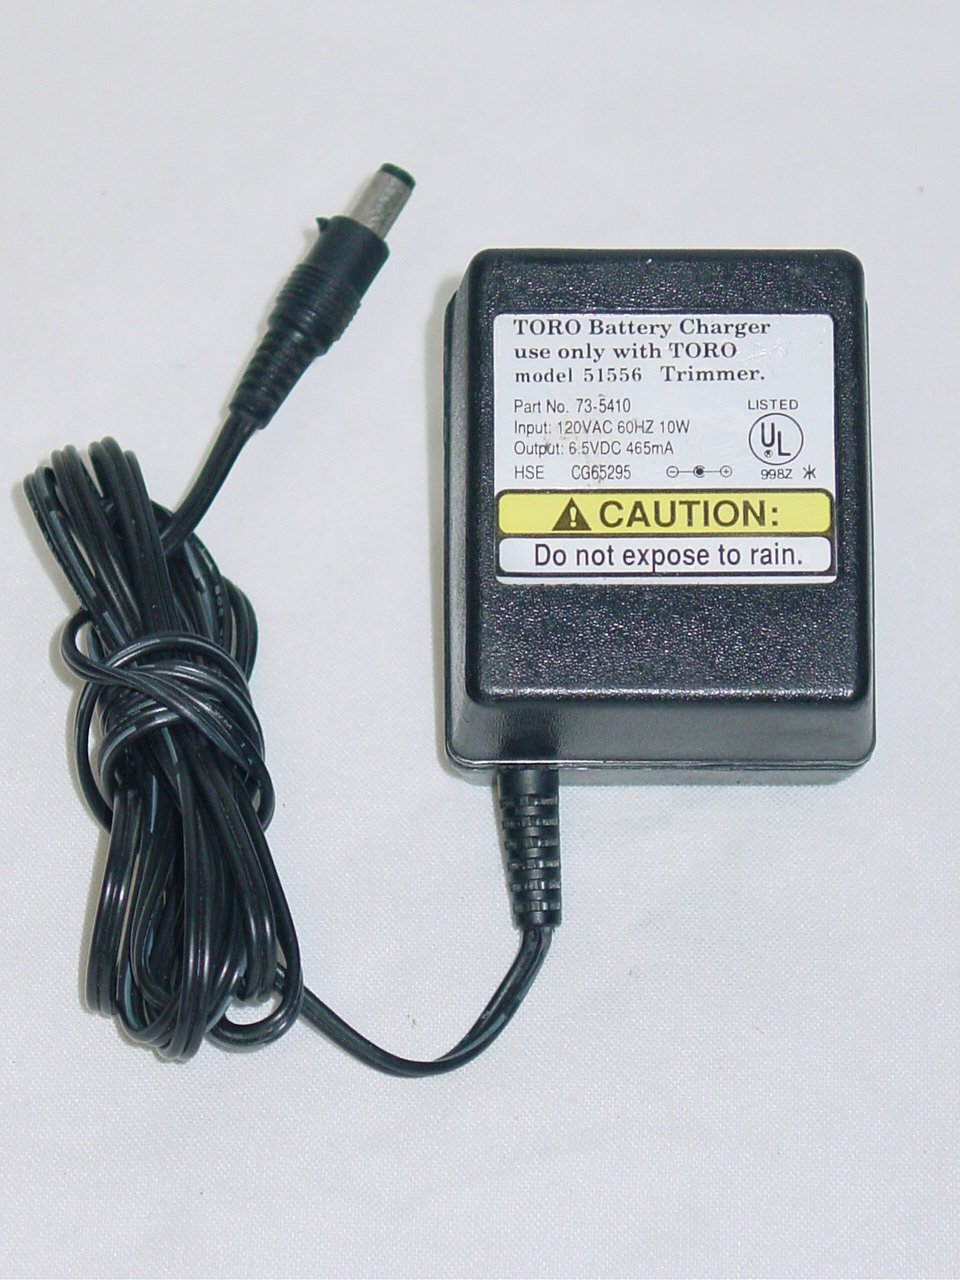 Toro 51556 Trimmer Battery Charger AC Adapter 73-5410 6.5V 465mA